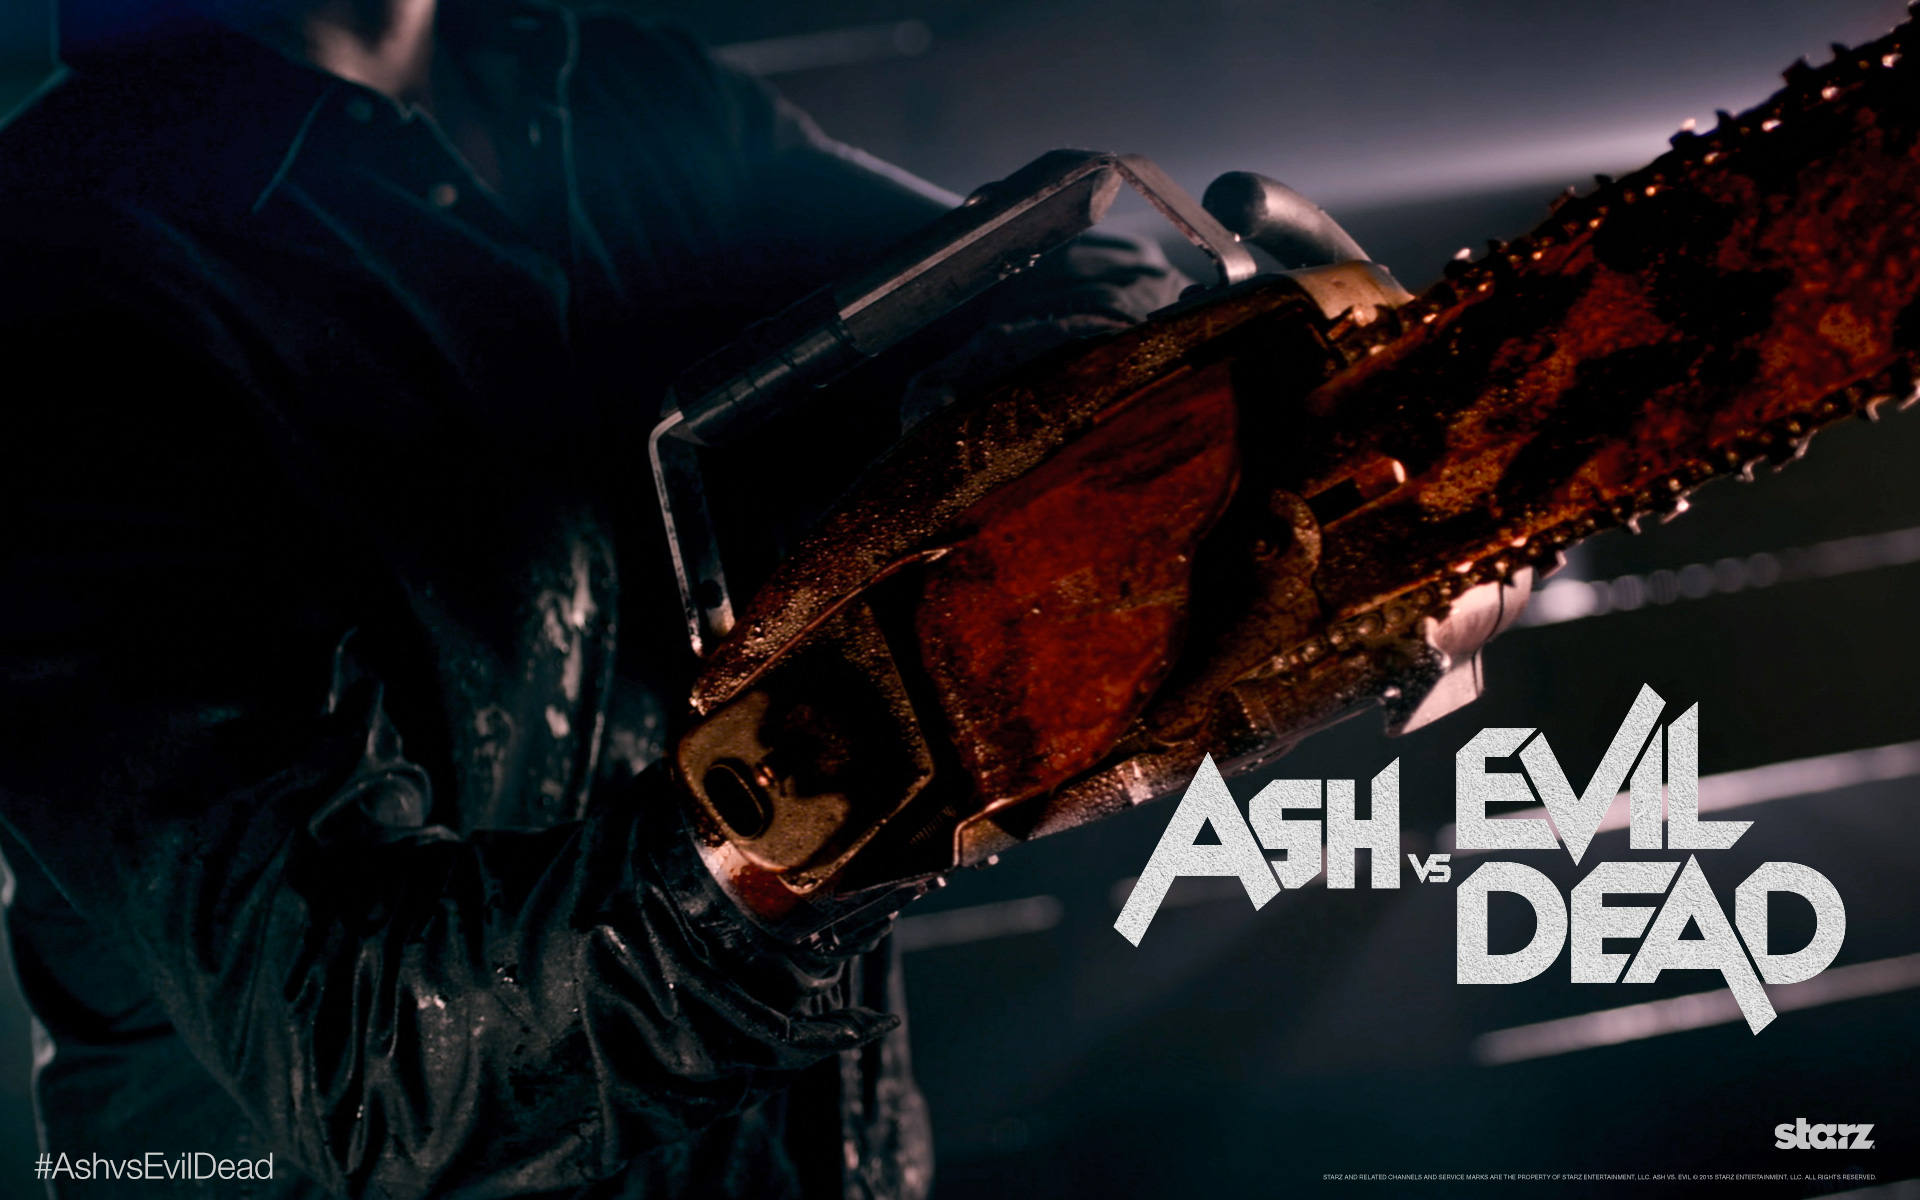 Full Trailer For 'Ash Vs. Evil Dead' Is The Most Fun I've had This Year